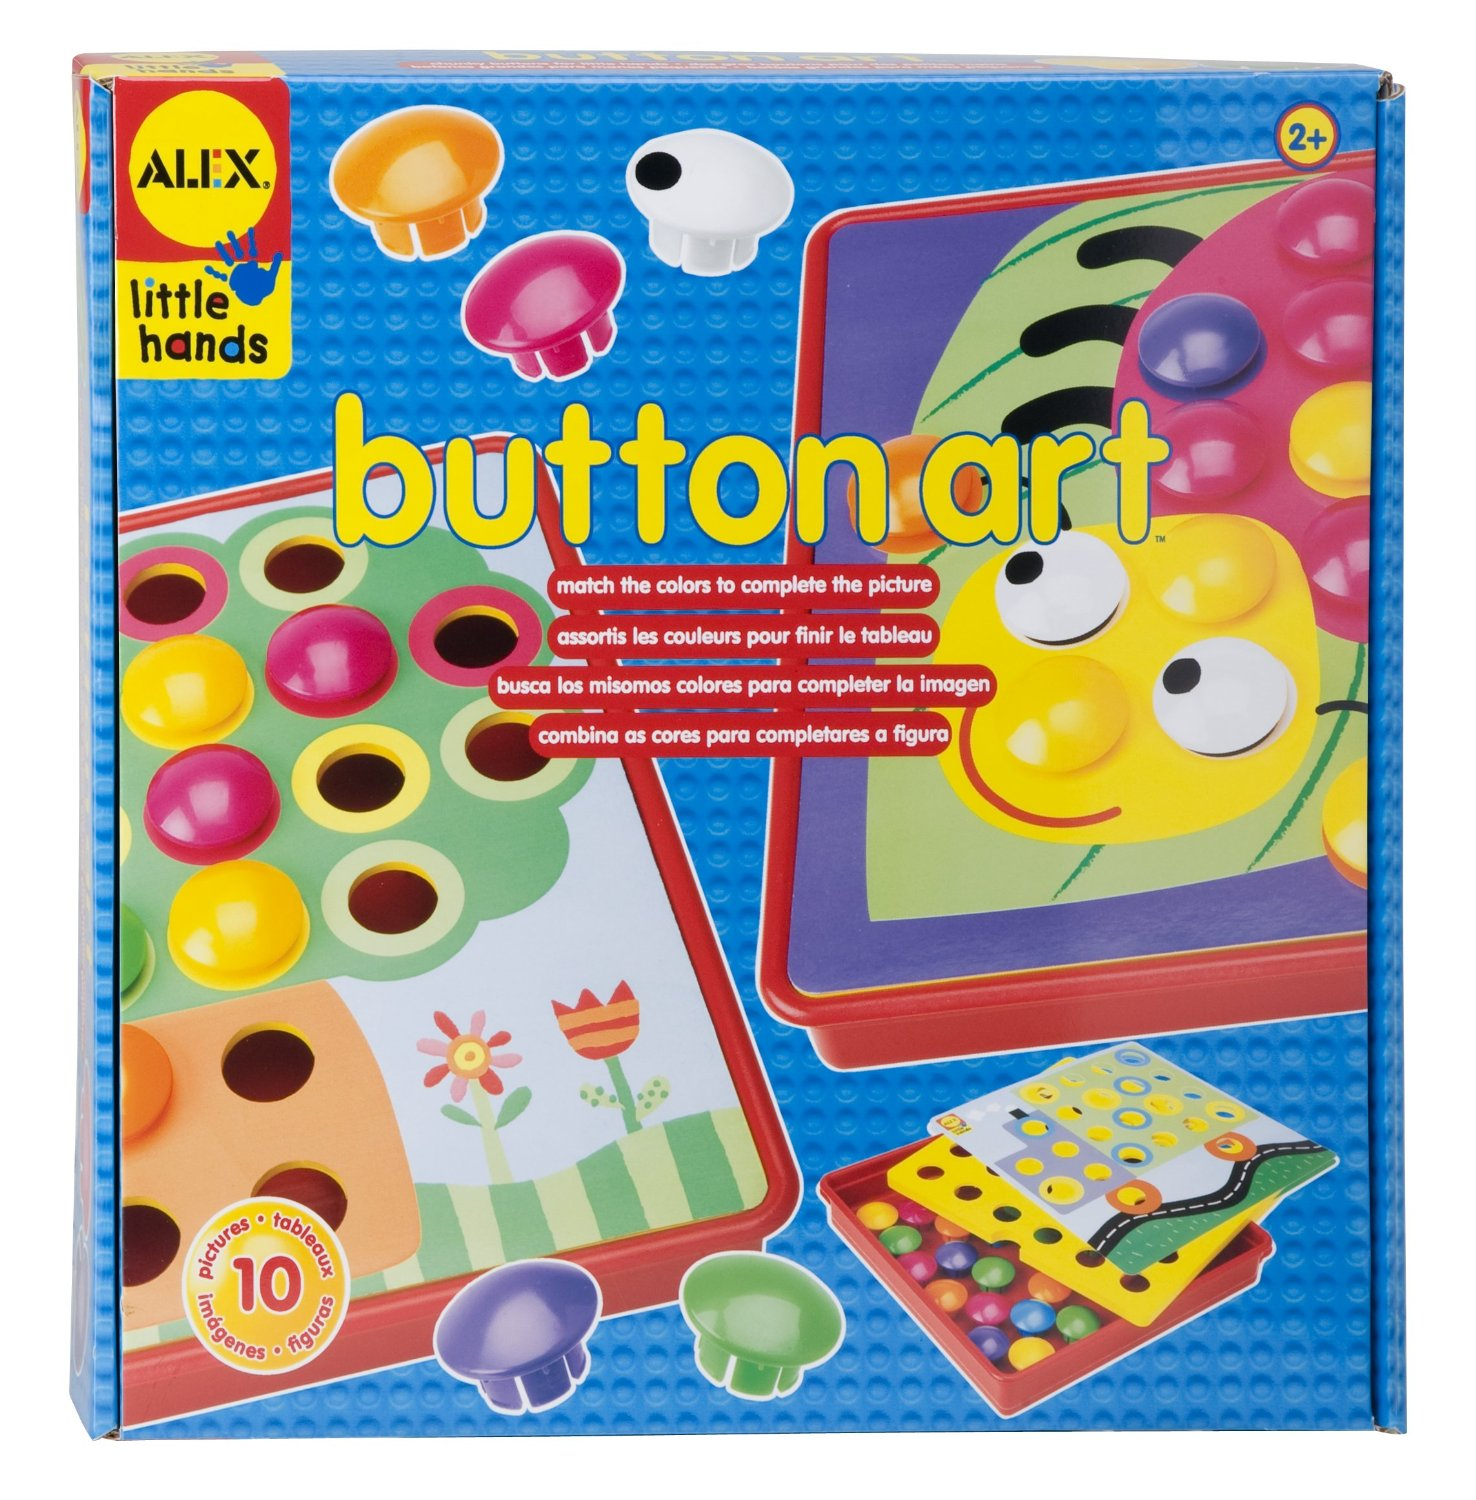 91r2Y+zX2XL. SL1500  *HOT* ALEX Little Hands Early Learning Button Art Only $8.80 (Reg. $22.00)!